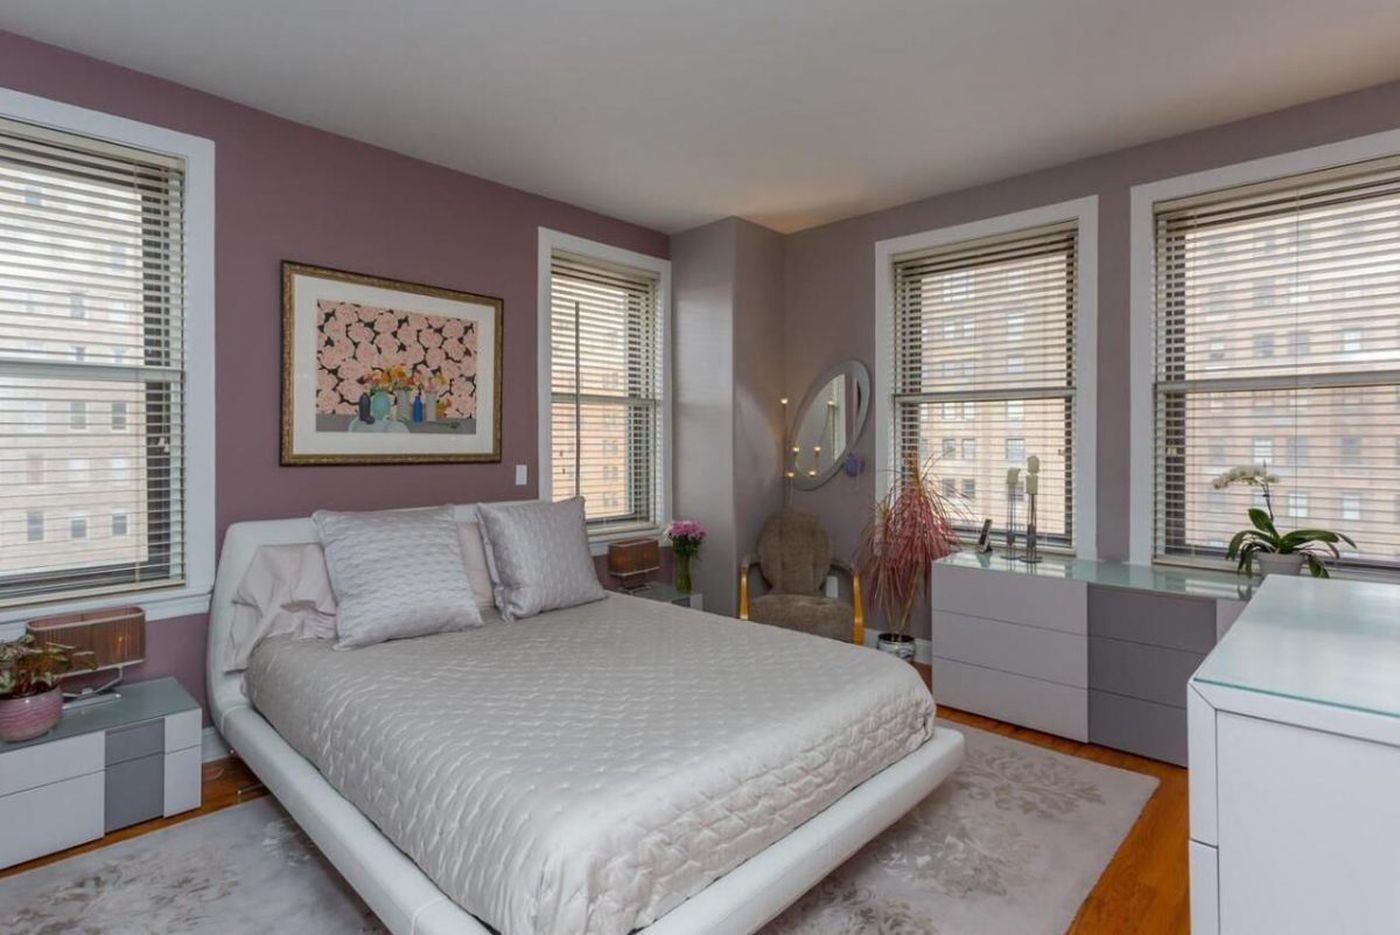 On the market: Rittenhouse condo with 180-degree views for $795,000